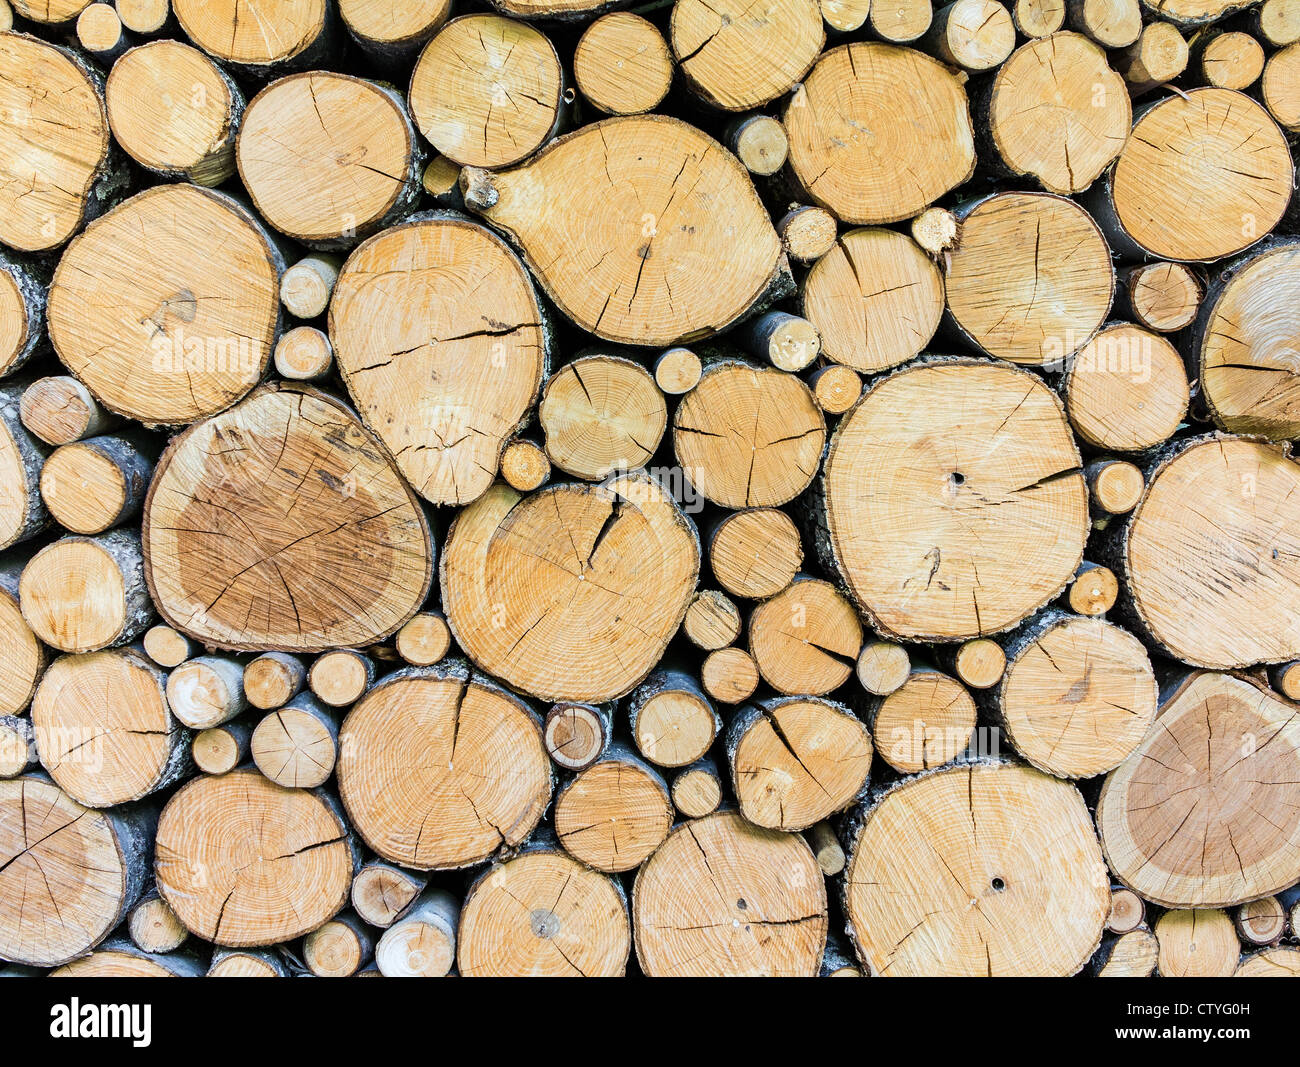 A timber woodpile background - Stock Image